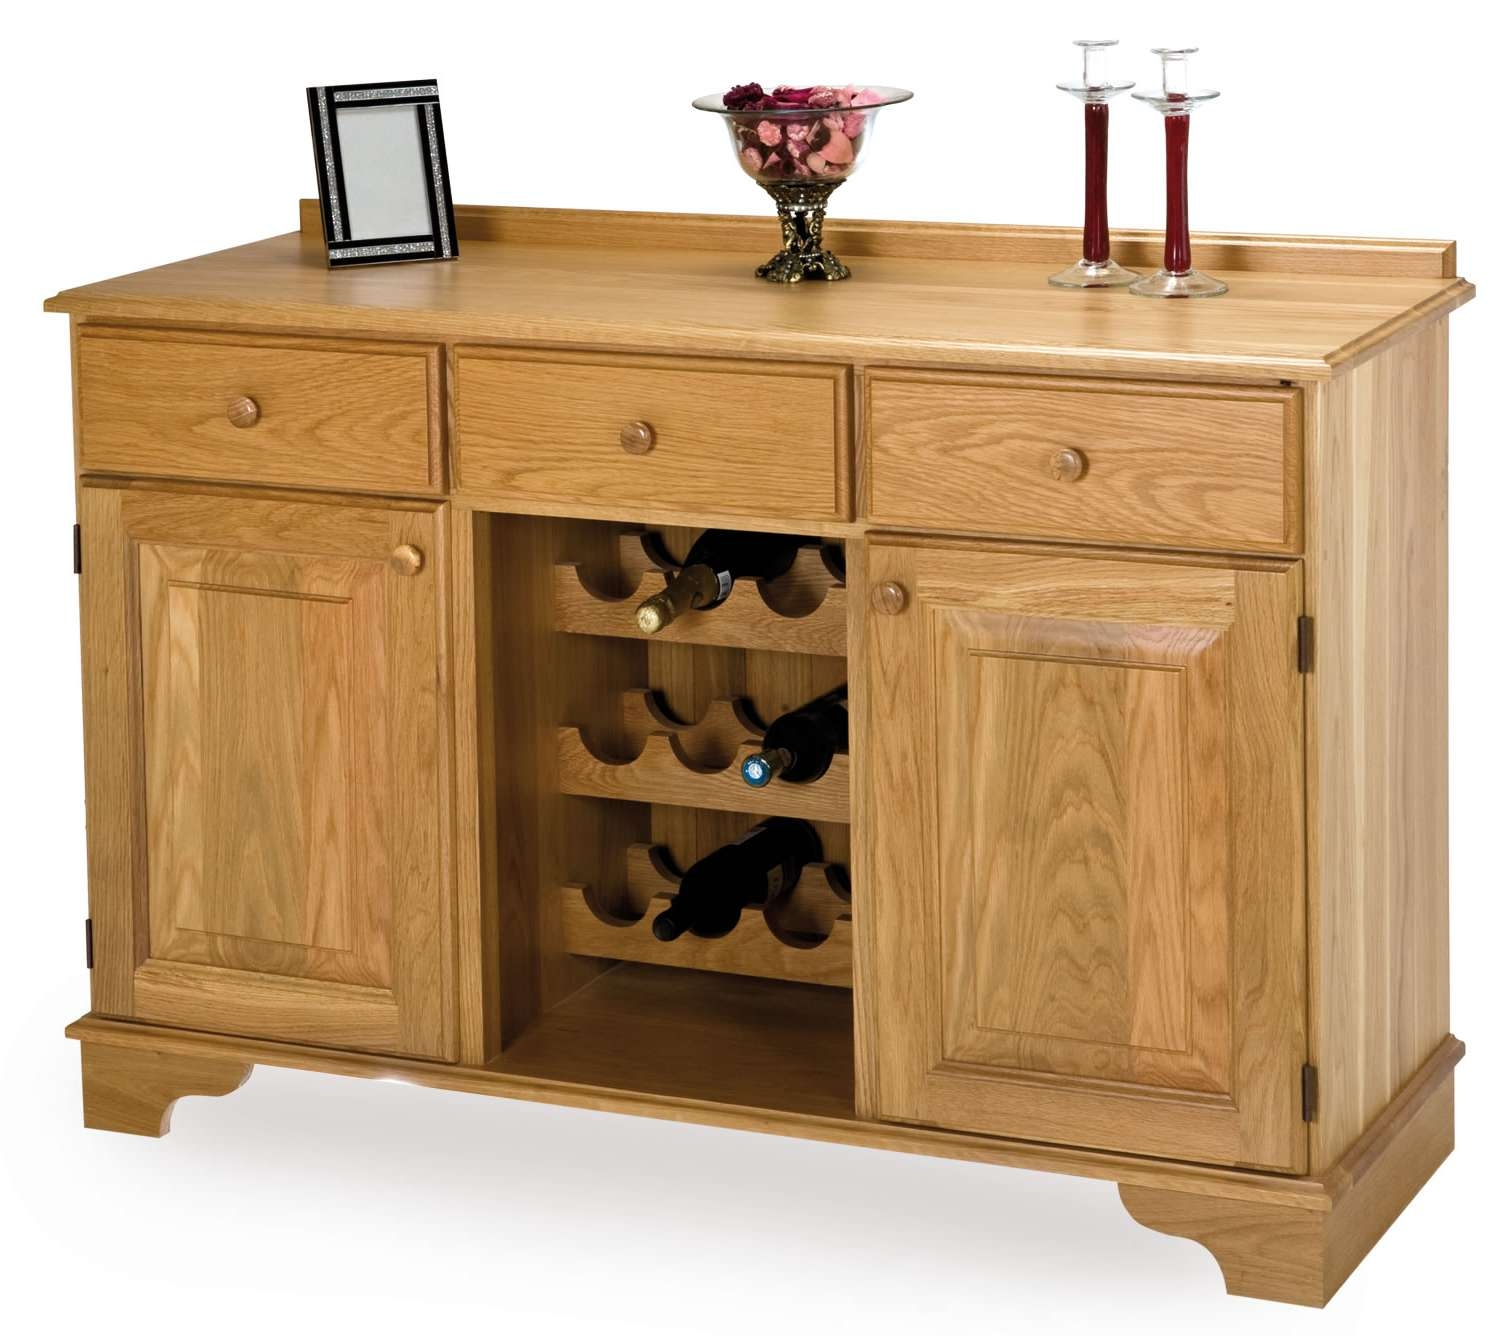 Oak Wine Rack Sideboard Regarding Sideboards With Wine Rack (View 12 of 20)